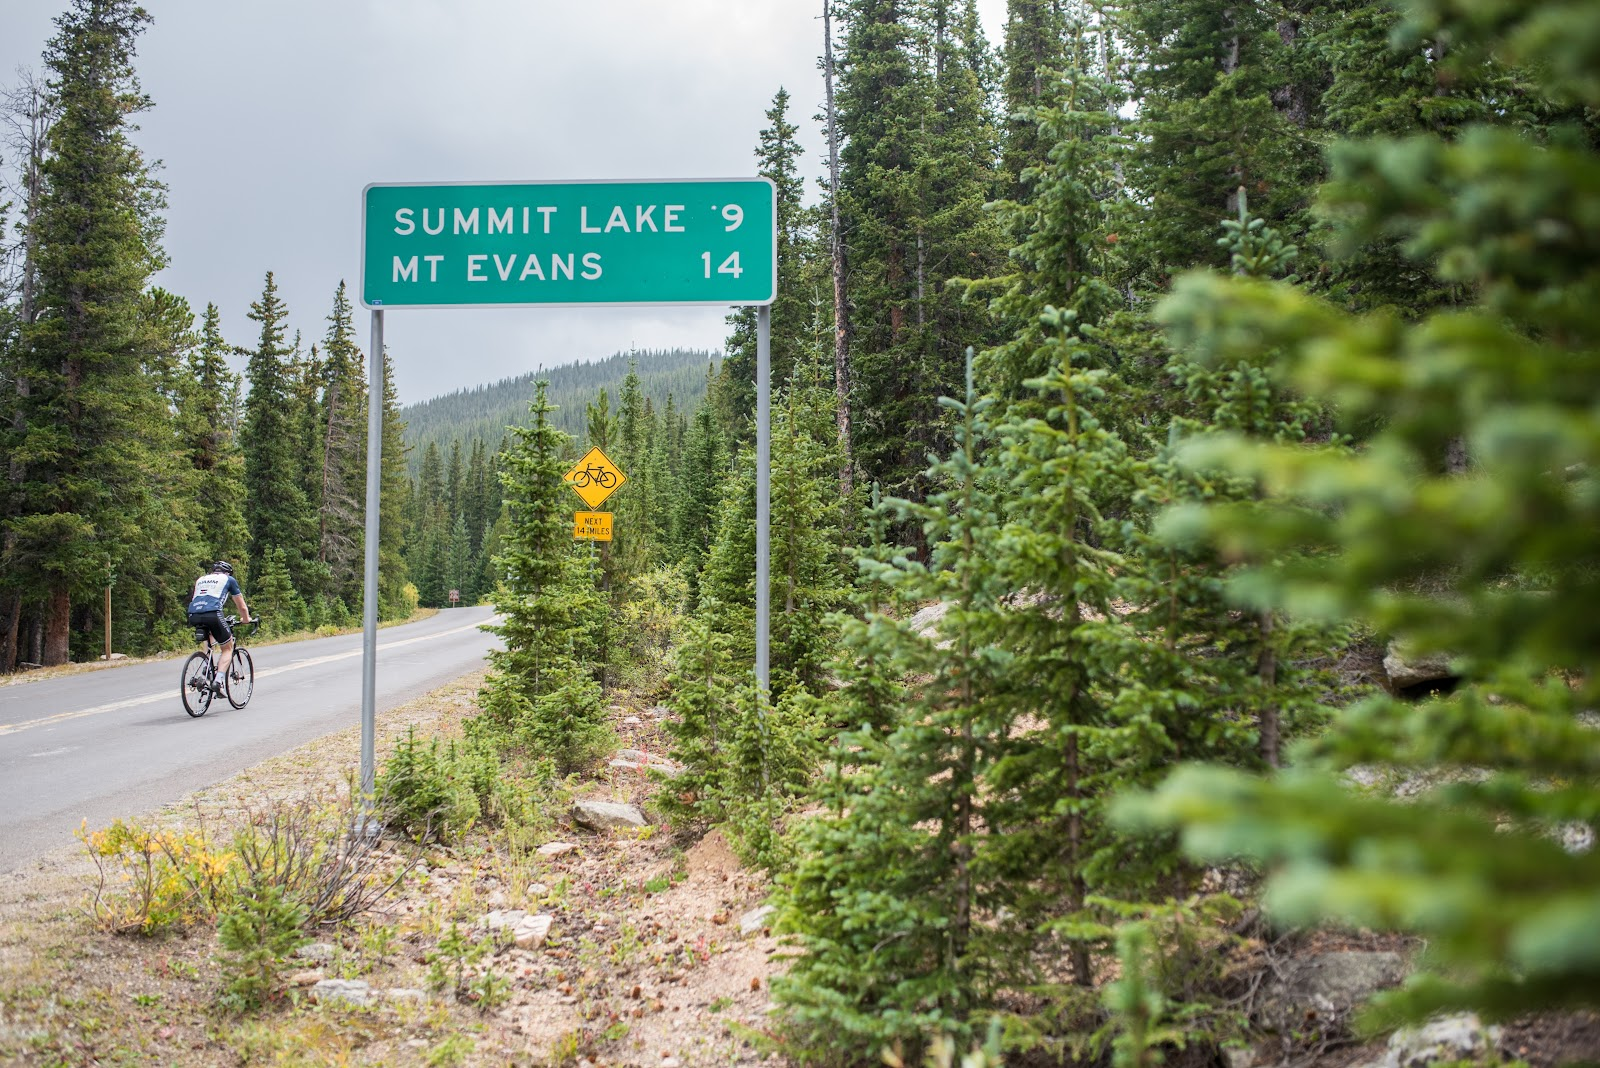 Cycling past road sign on Mt Evans Road Rocky Mountains